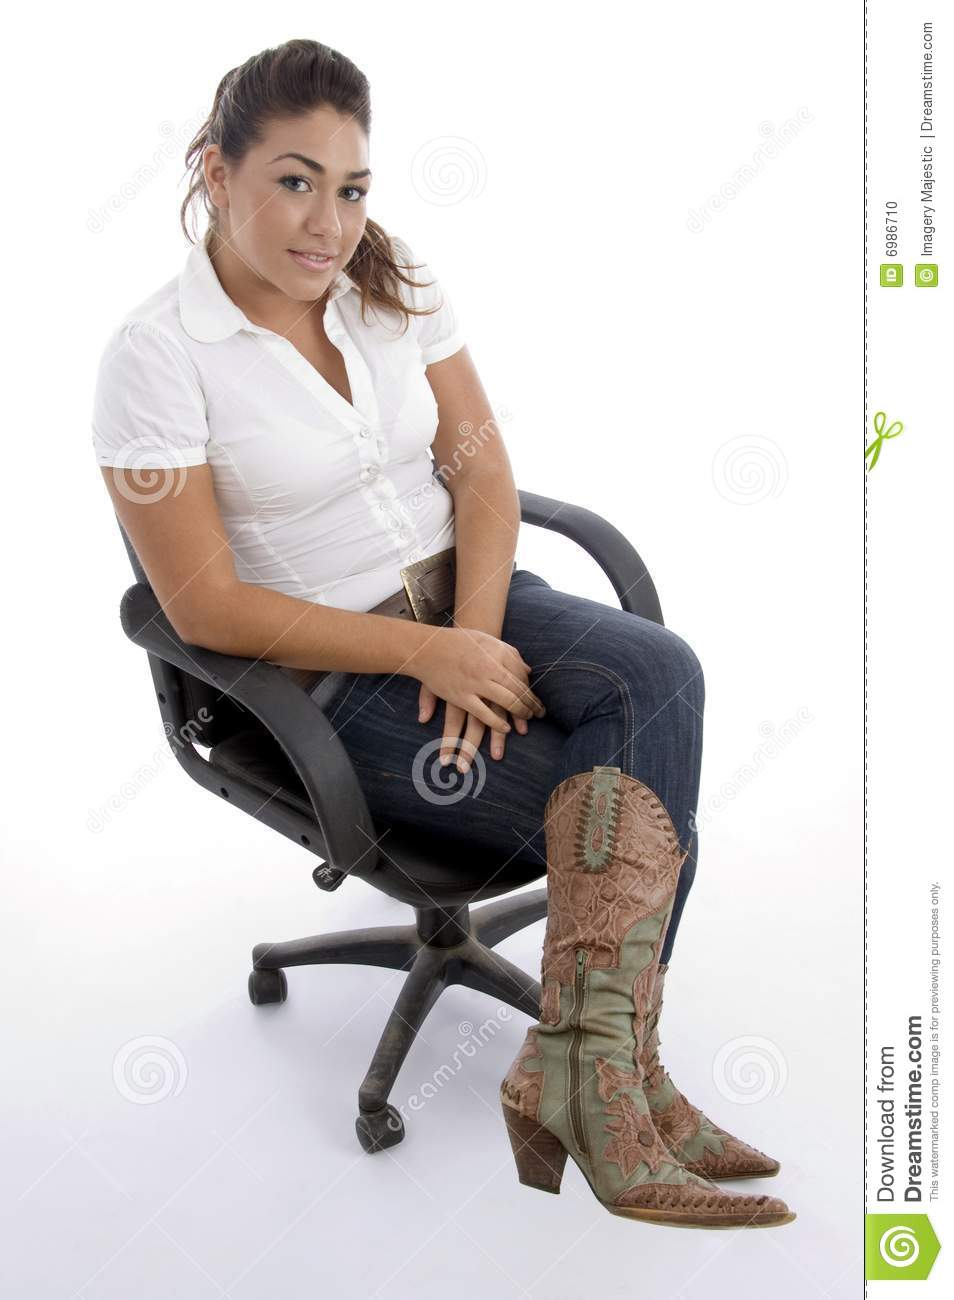 Young Pretty Sitting On The Chair Stock Photo - Image: 6986710